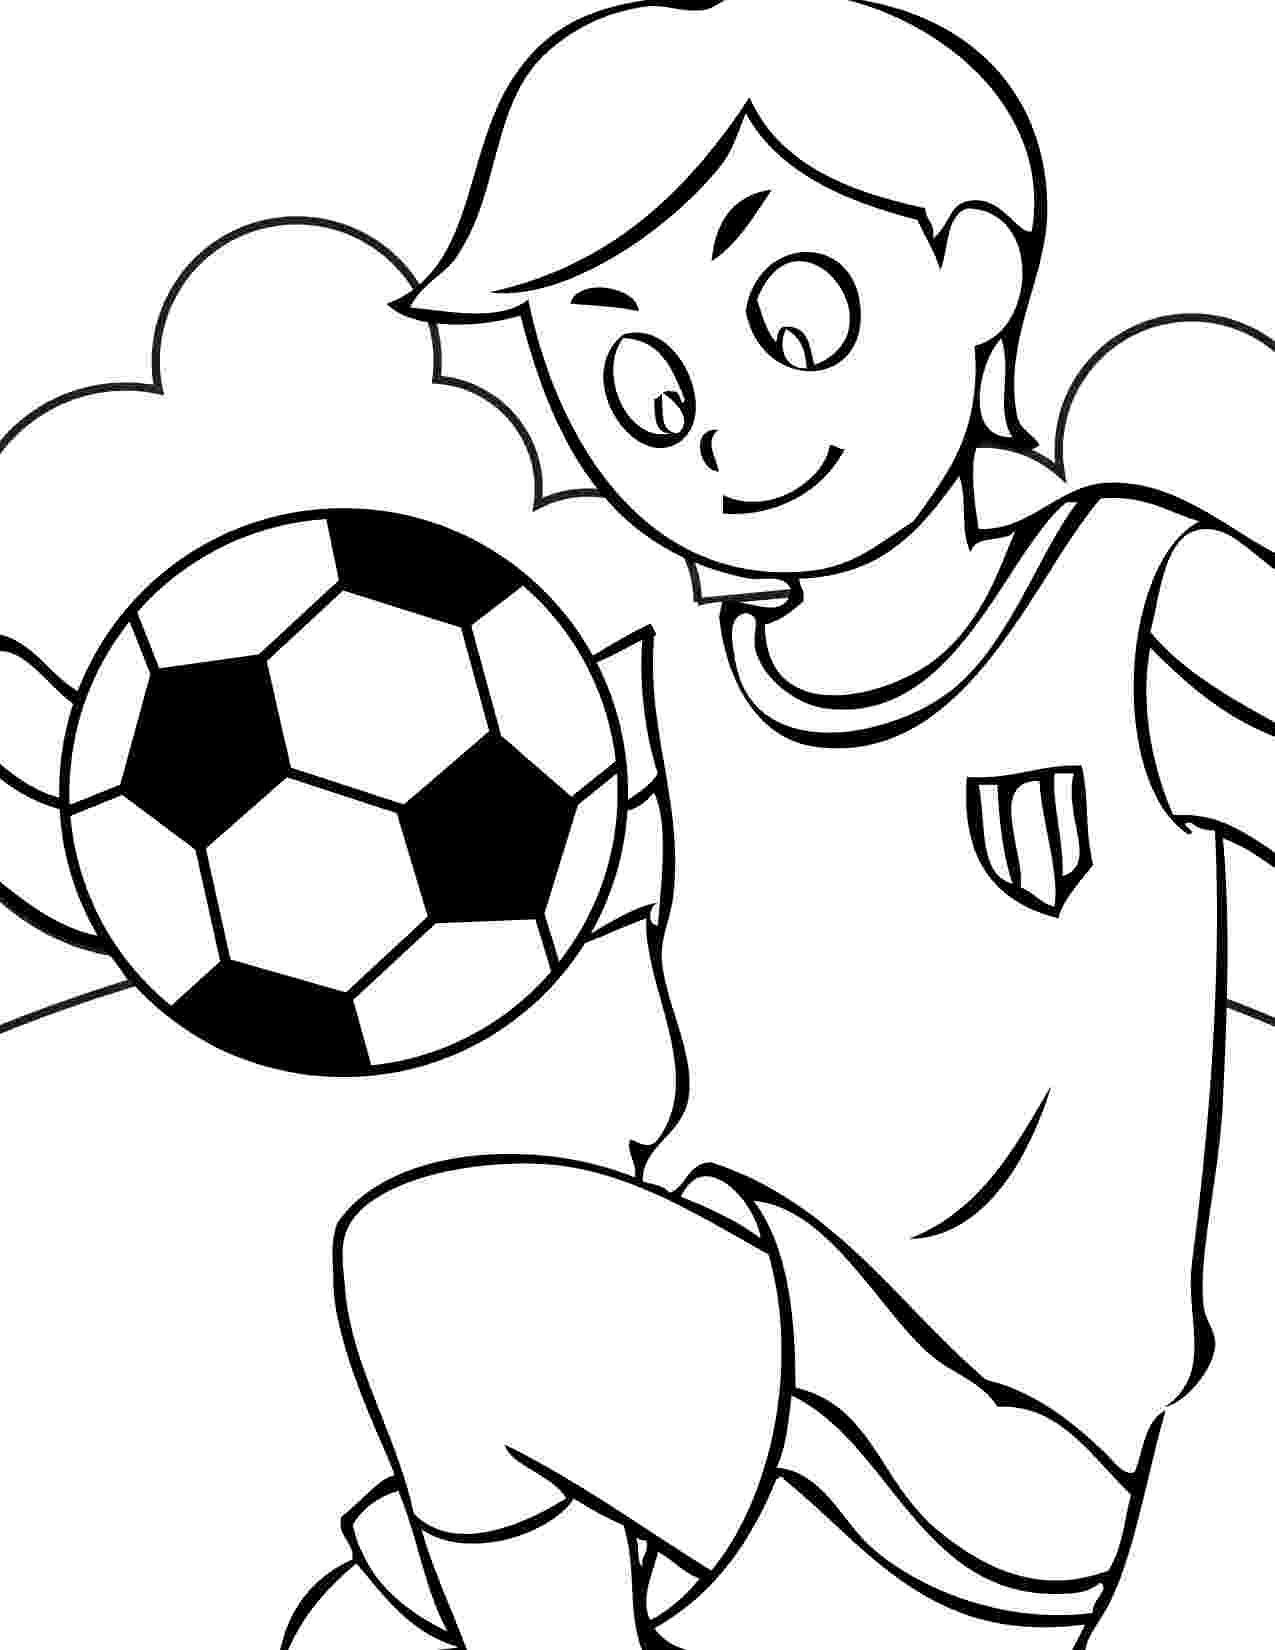 kids sports coloring pages sports coloring pages for kids coloring kids pages sports